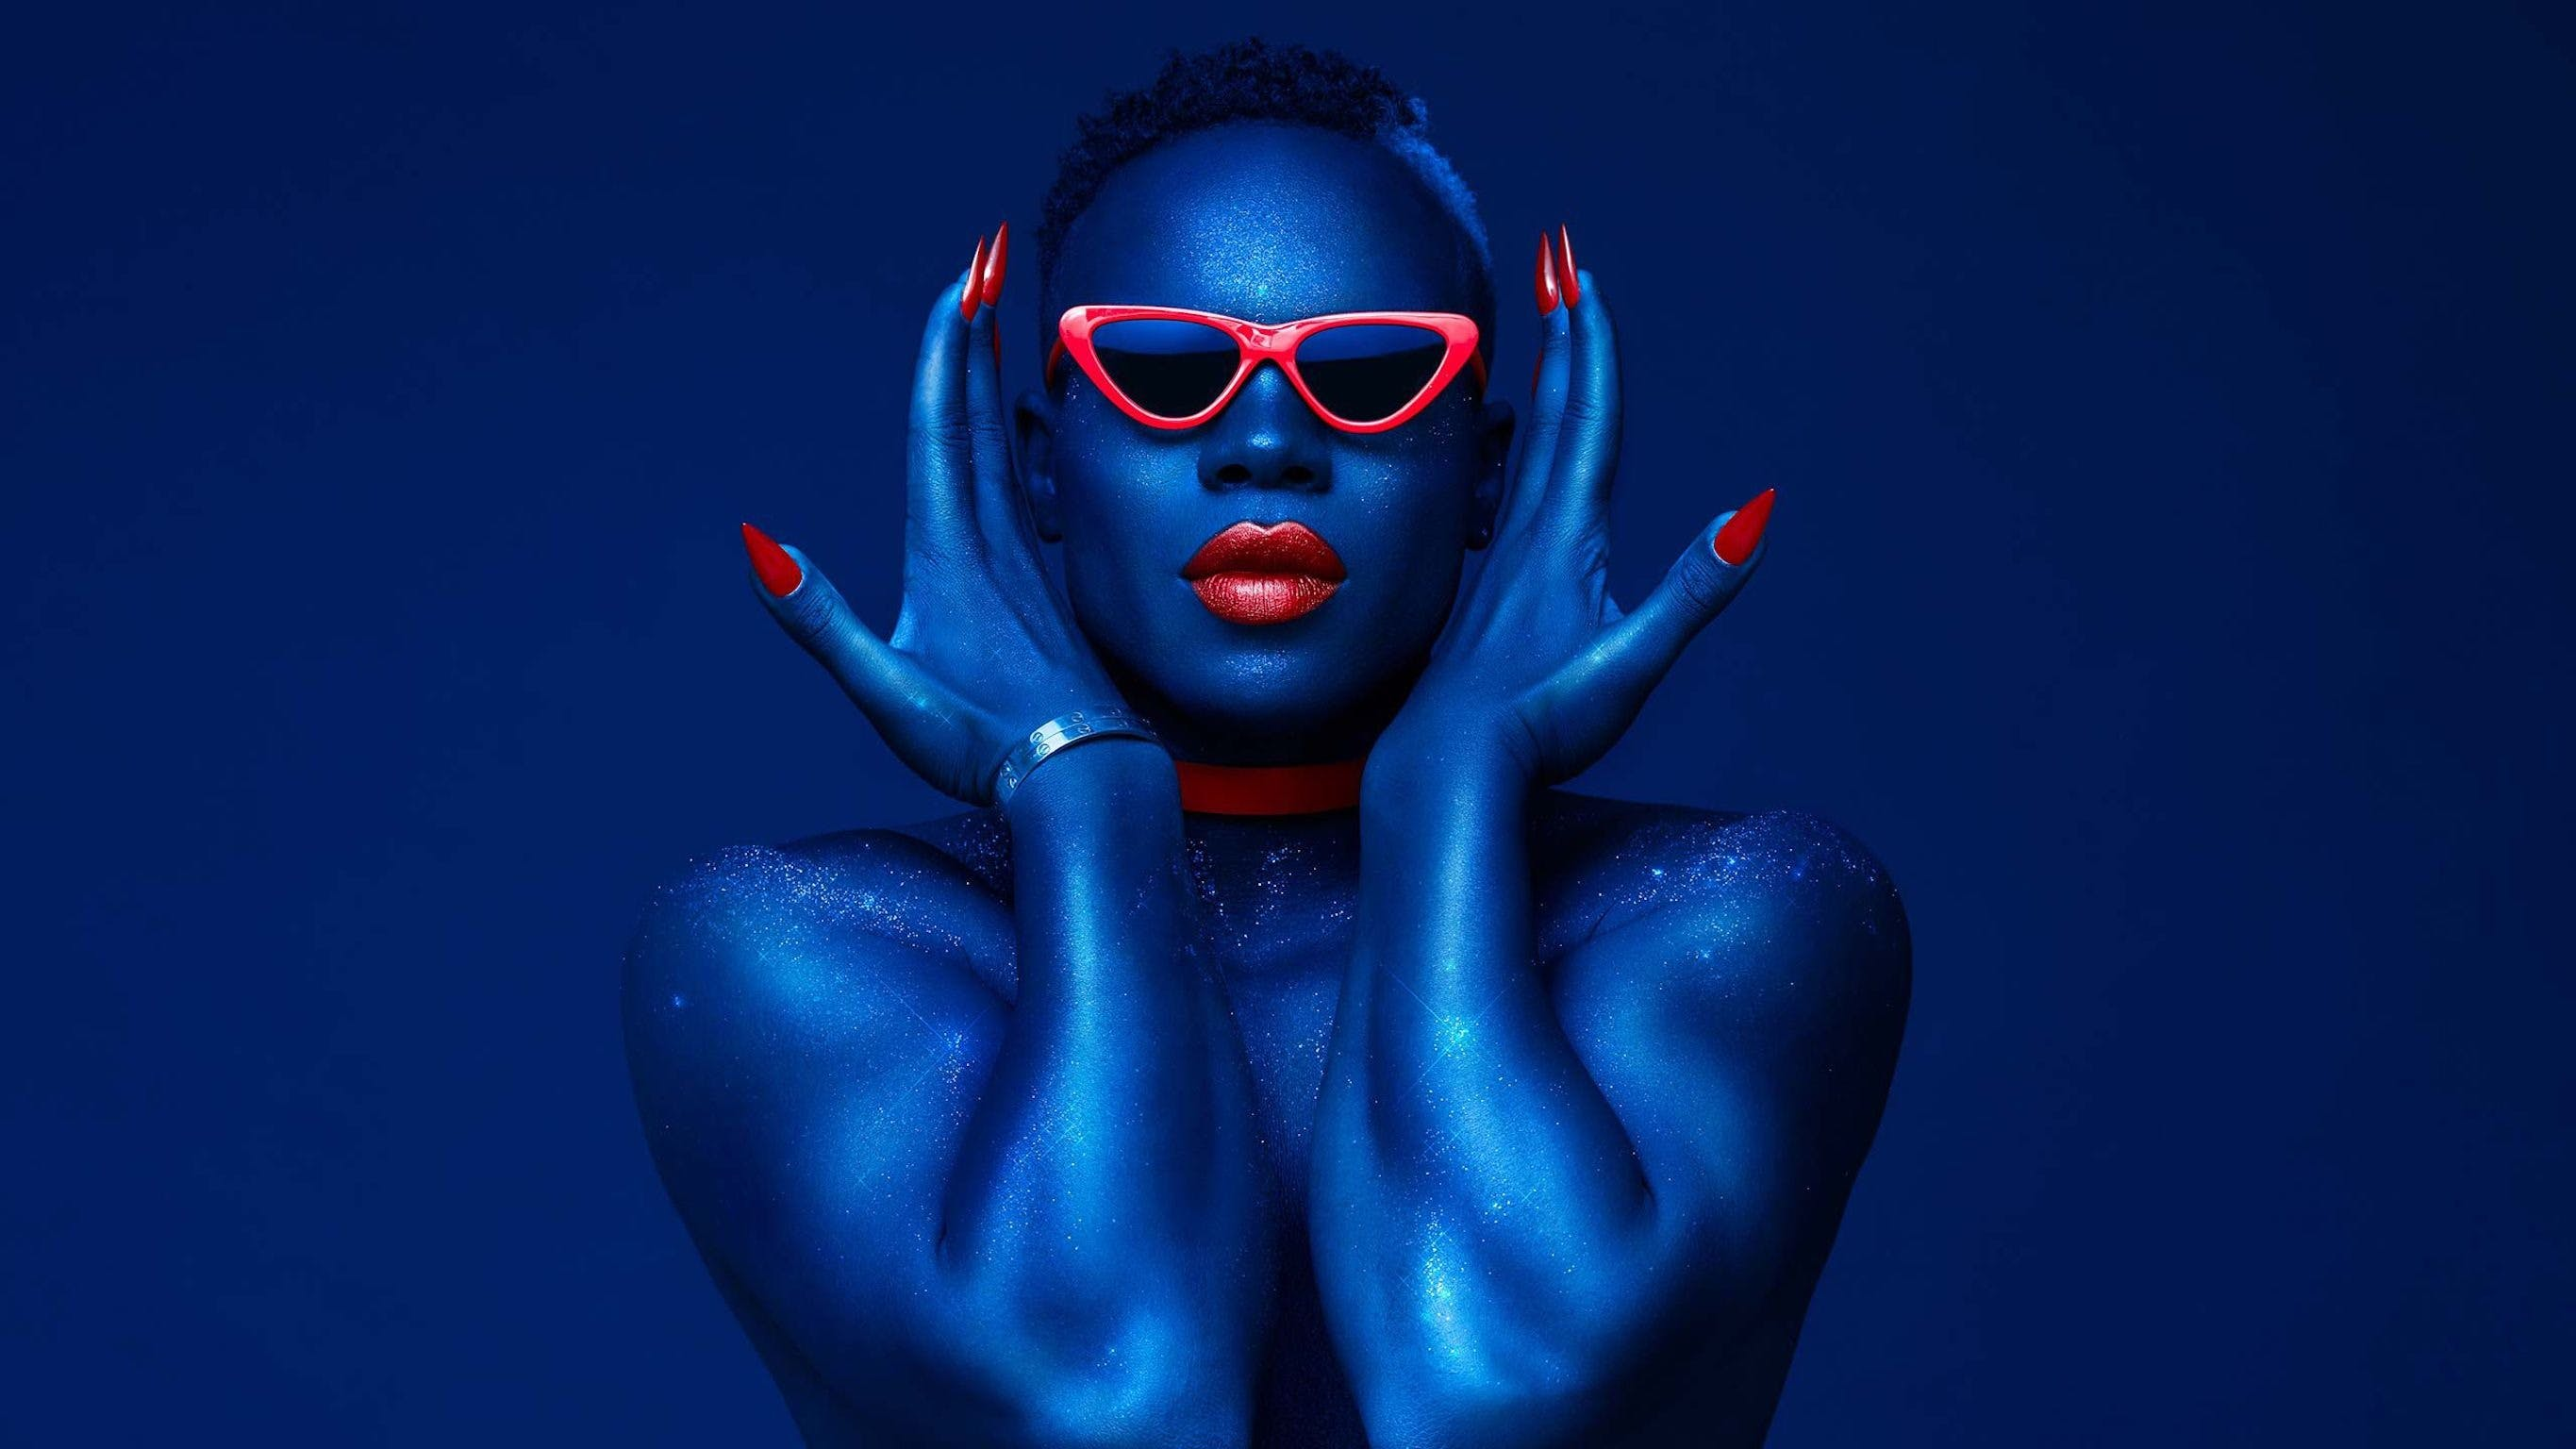 Todrick Hall - Haus Party Tour Brisbane Logo and Images